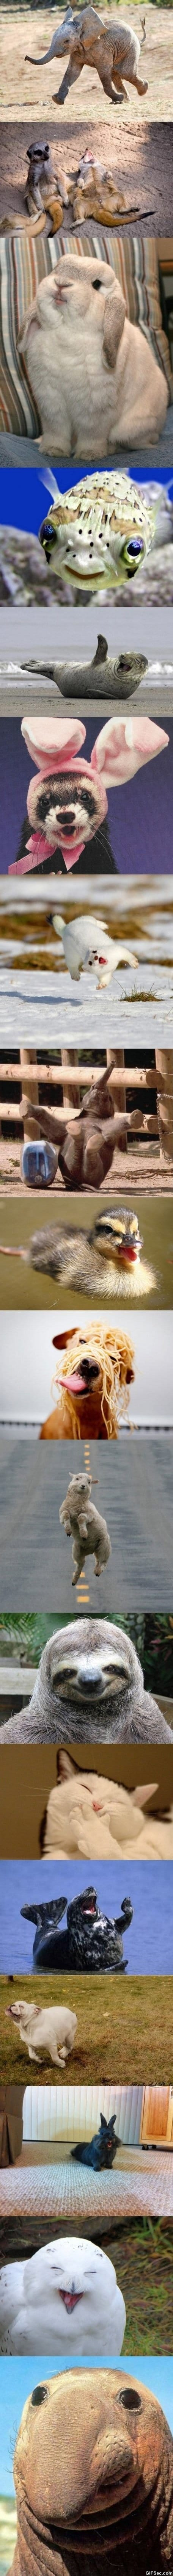 Funny - Worlds happiest animals